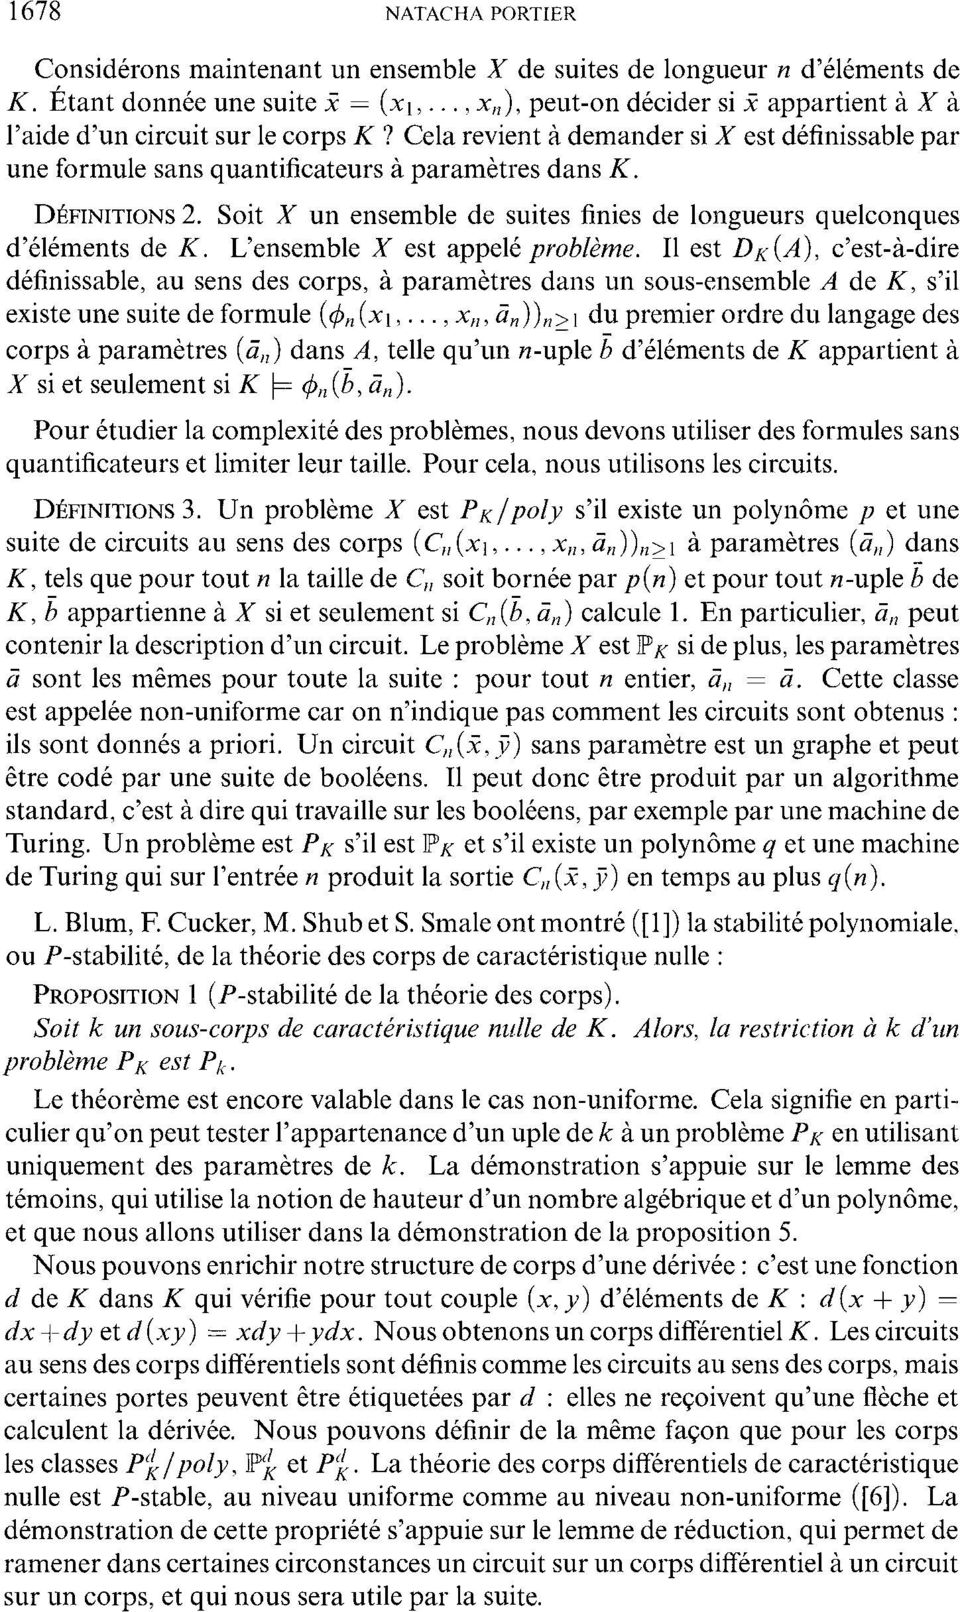 DIFINITIONS 2. Soit X un ensemble de suites finies de longueurs quelconques d'elements de K. L'ensemble X est appele problem.